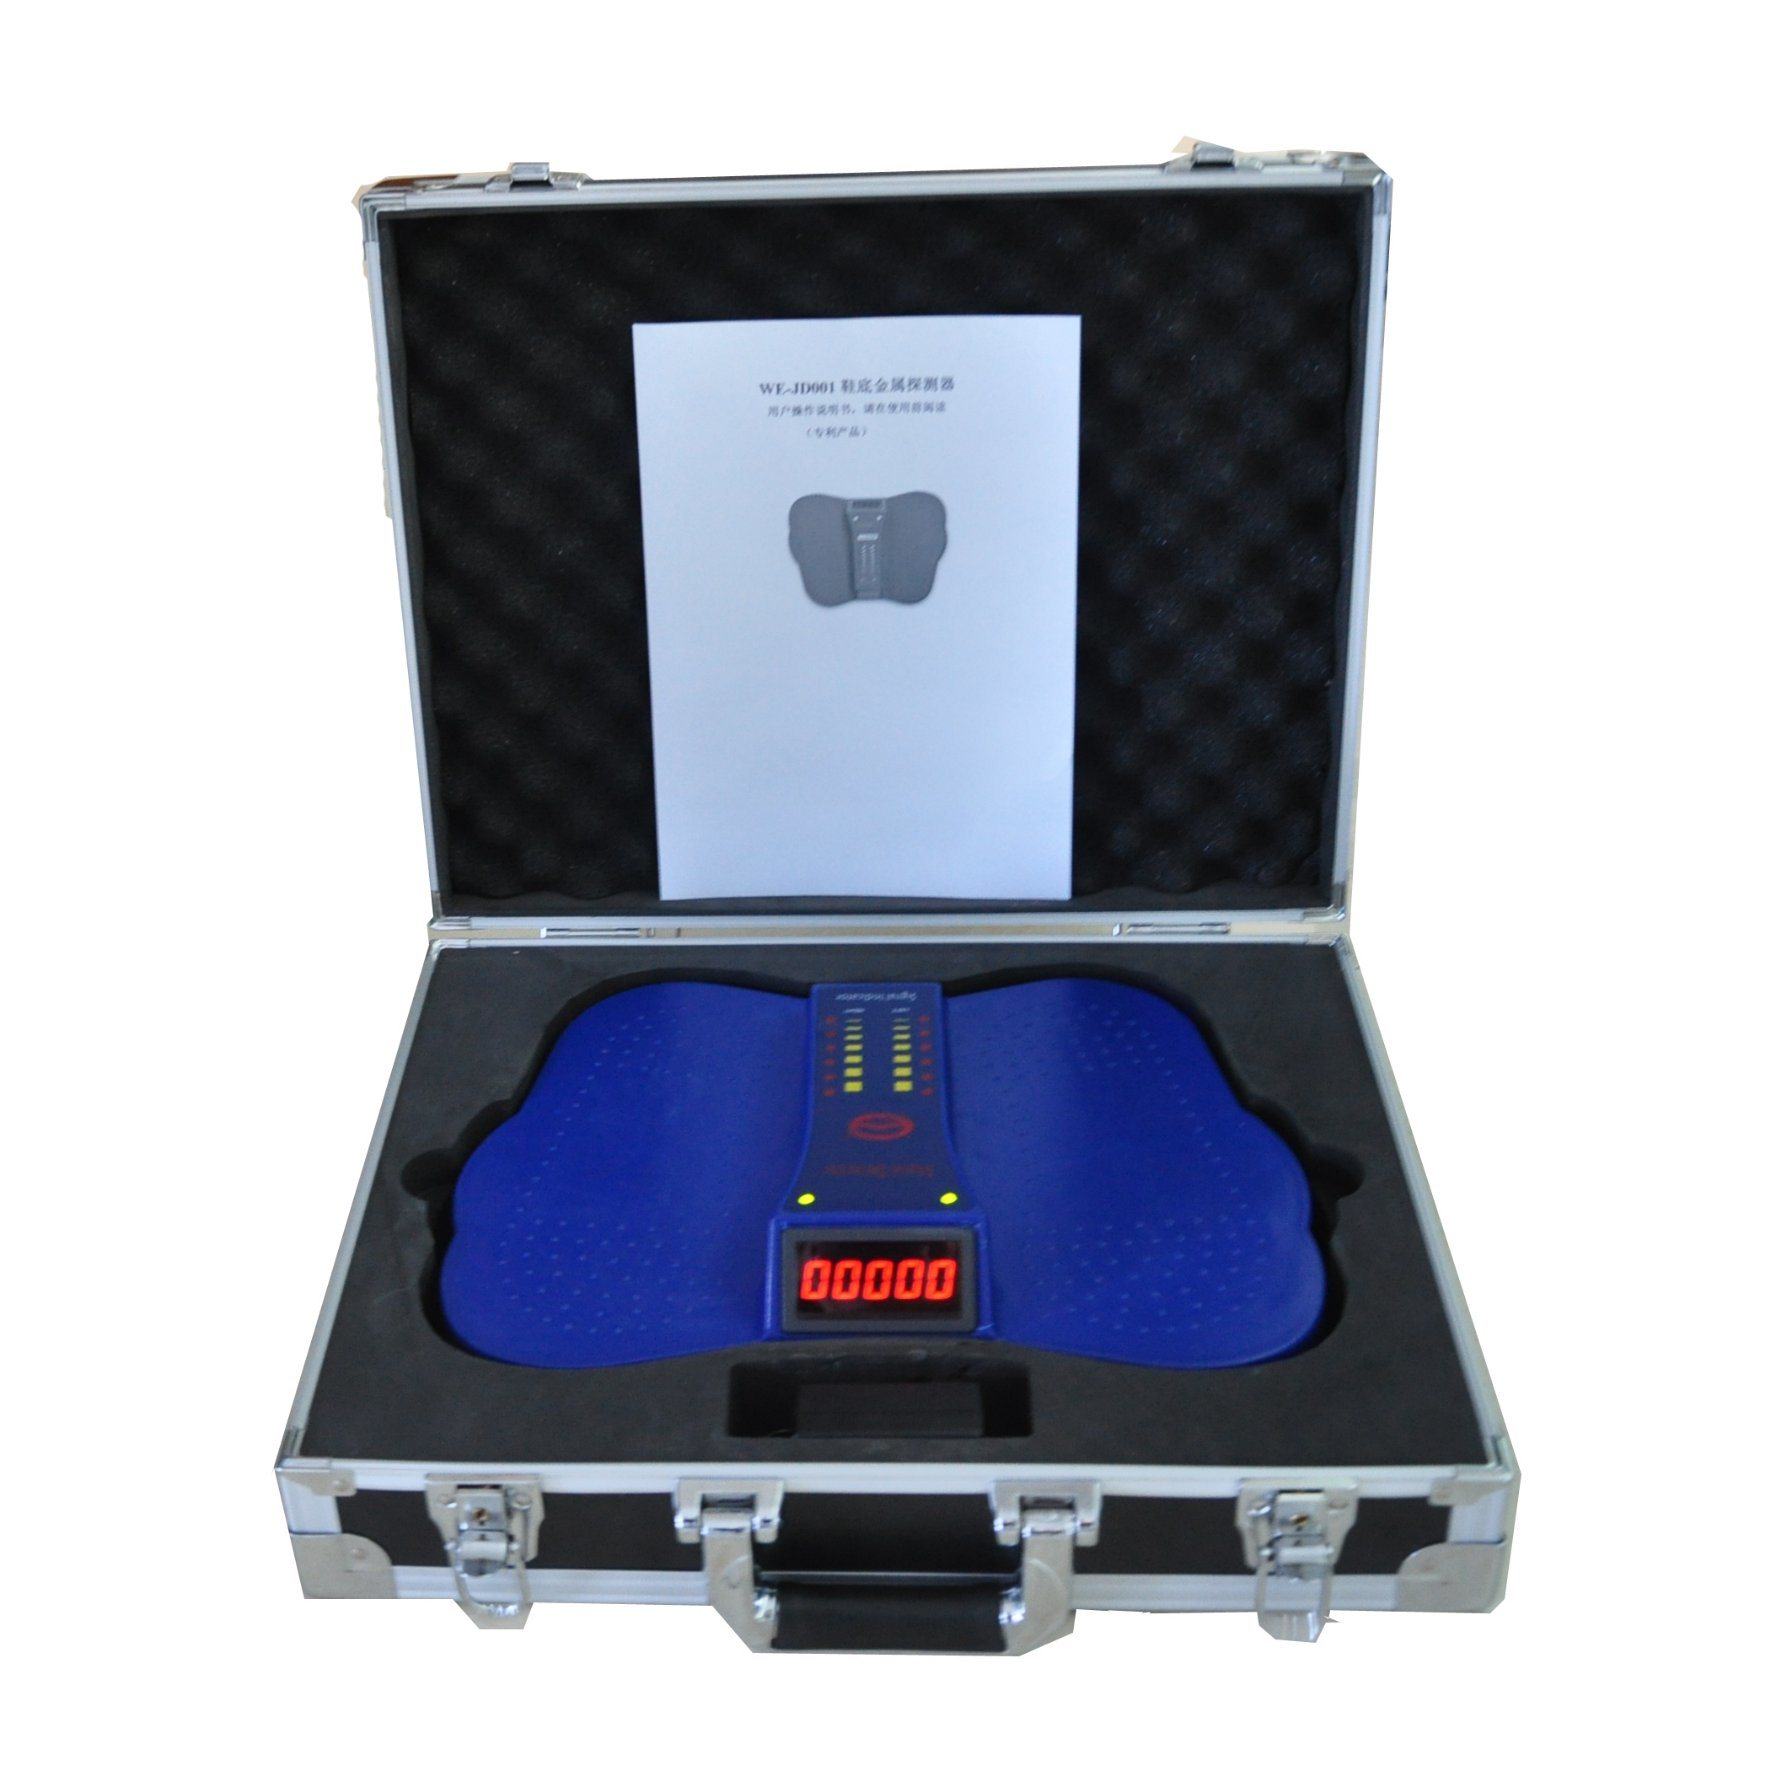 We-Jd001 Shoes Detector /Metal-Detecting /Magnetometer Screening